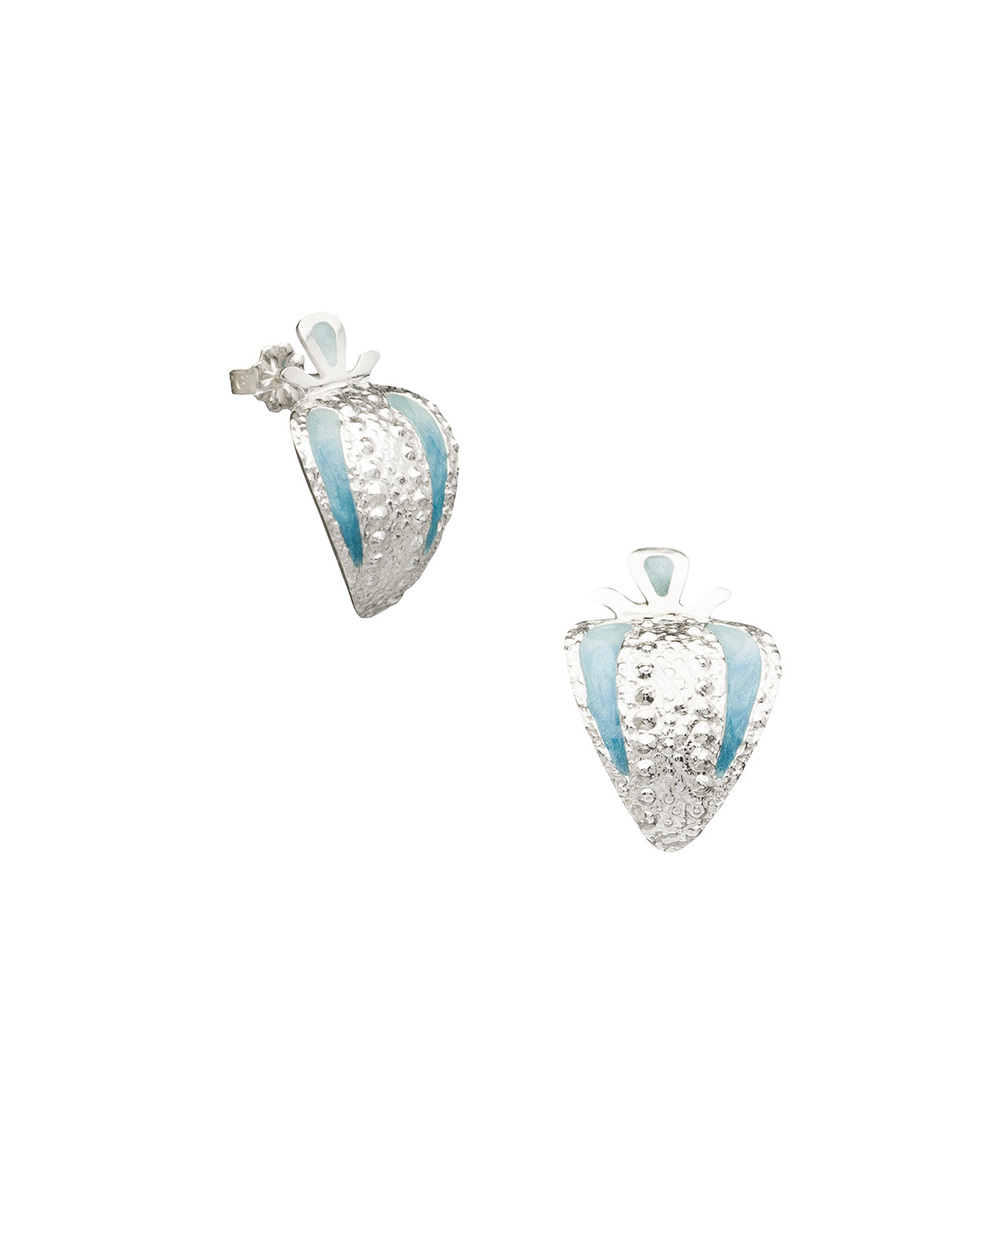 2015-10-Mary-Lynn-Podiluk-Argot-Earrings-S09a.jpg